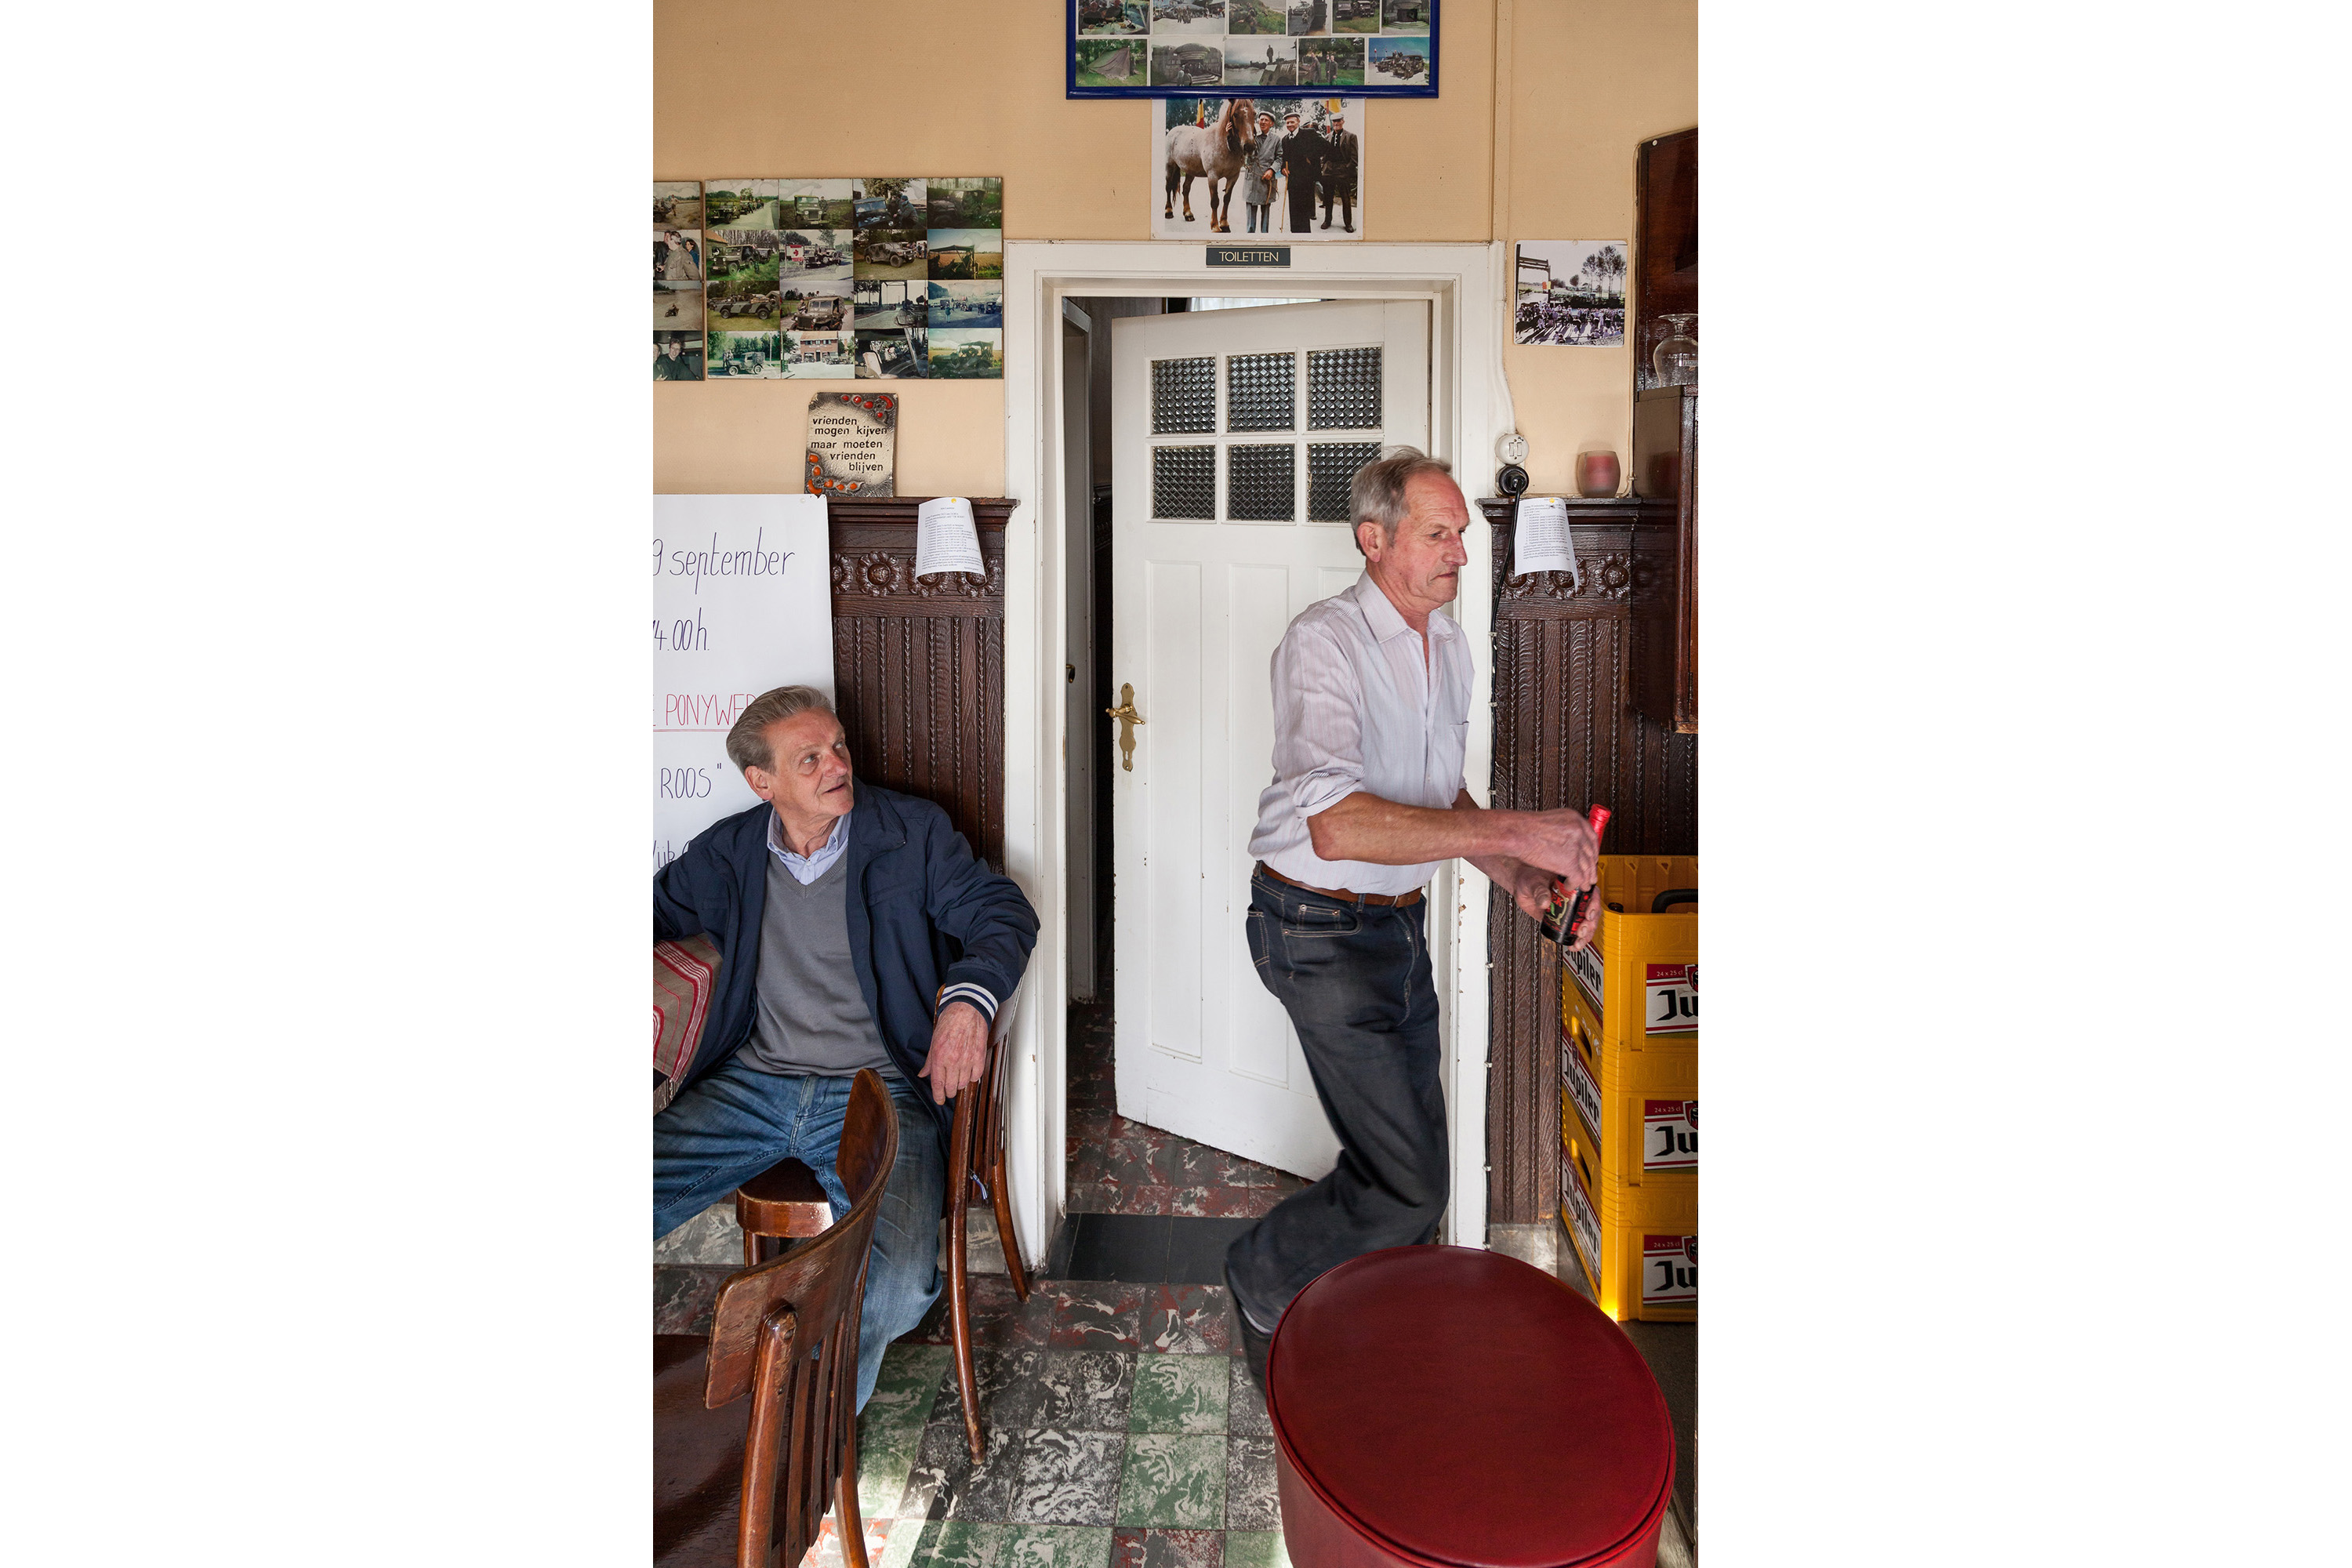 photo by Bert Vereecke for photoseries Zevende dag naar Compostella (Wilfried De Geeter, café De Roos, Sint-Laureins)